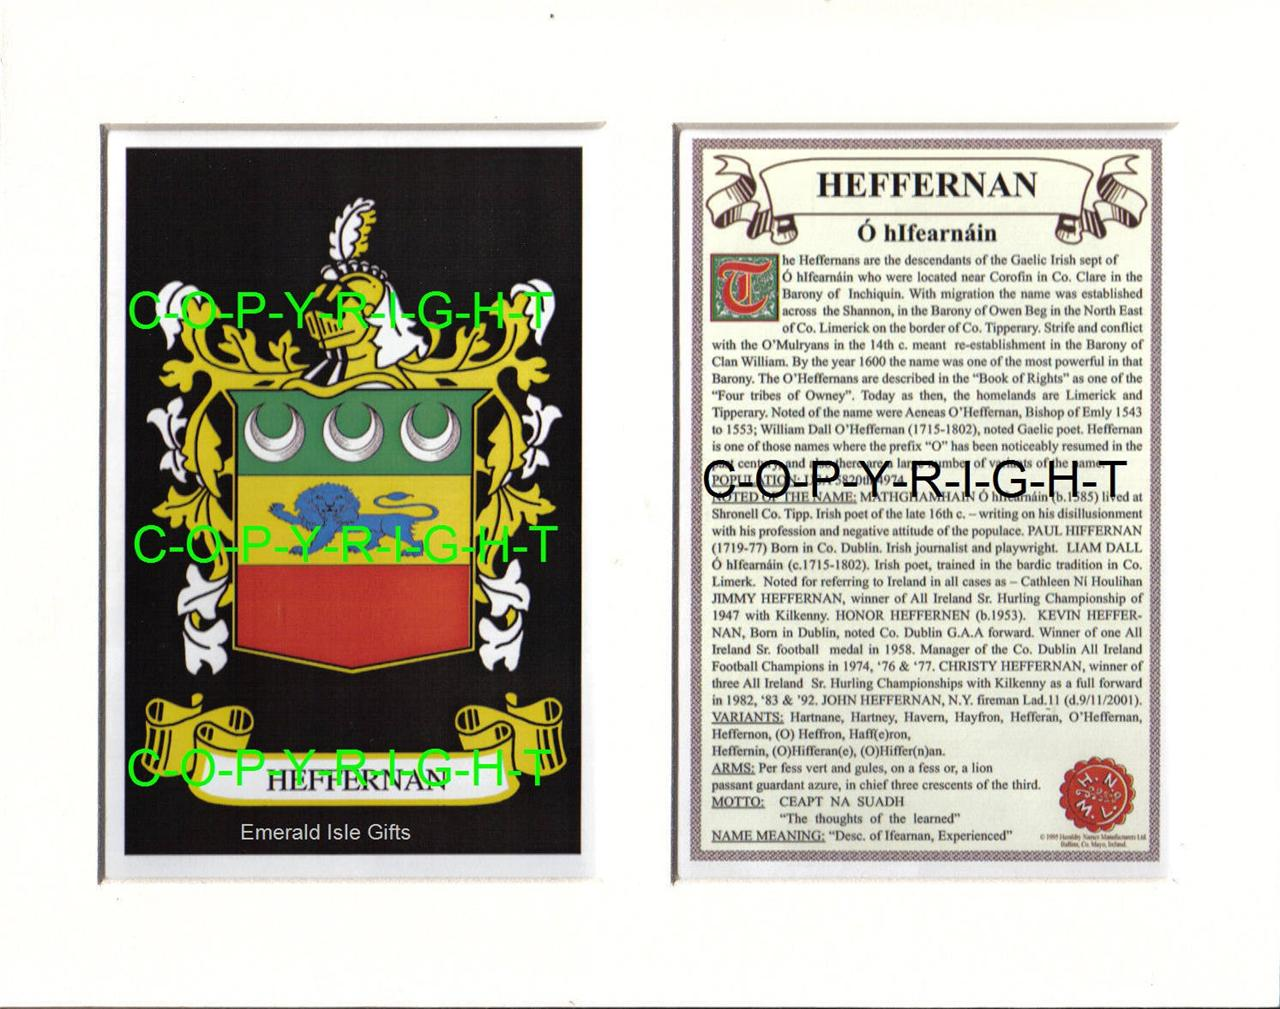 HEFFERNAN-Family-Coat-of-Arms-Crest-History-Available-Mounted-or-Framed